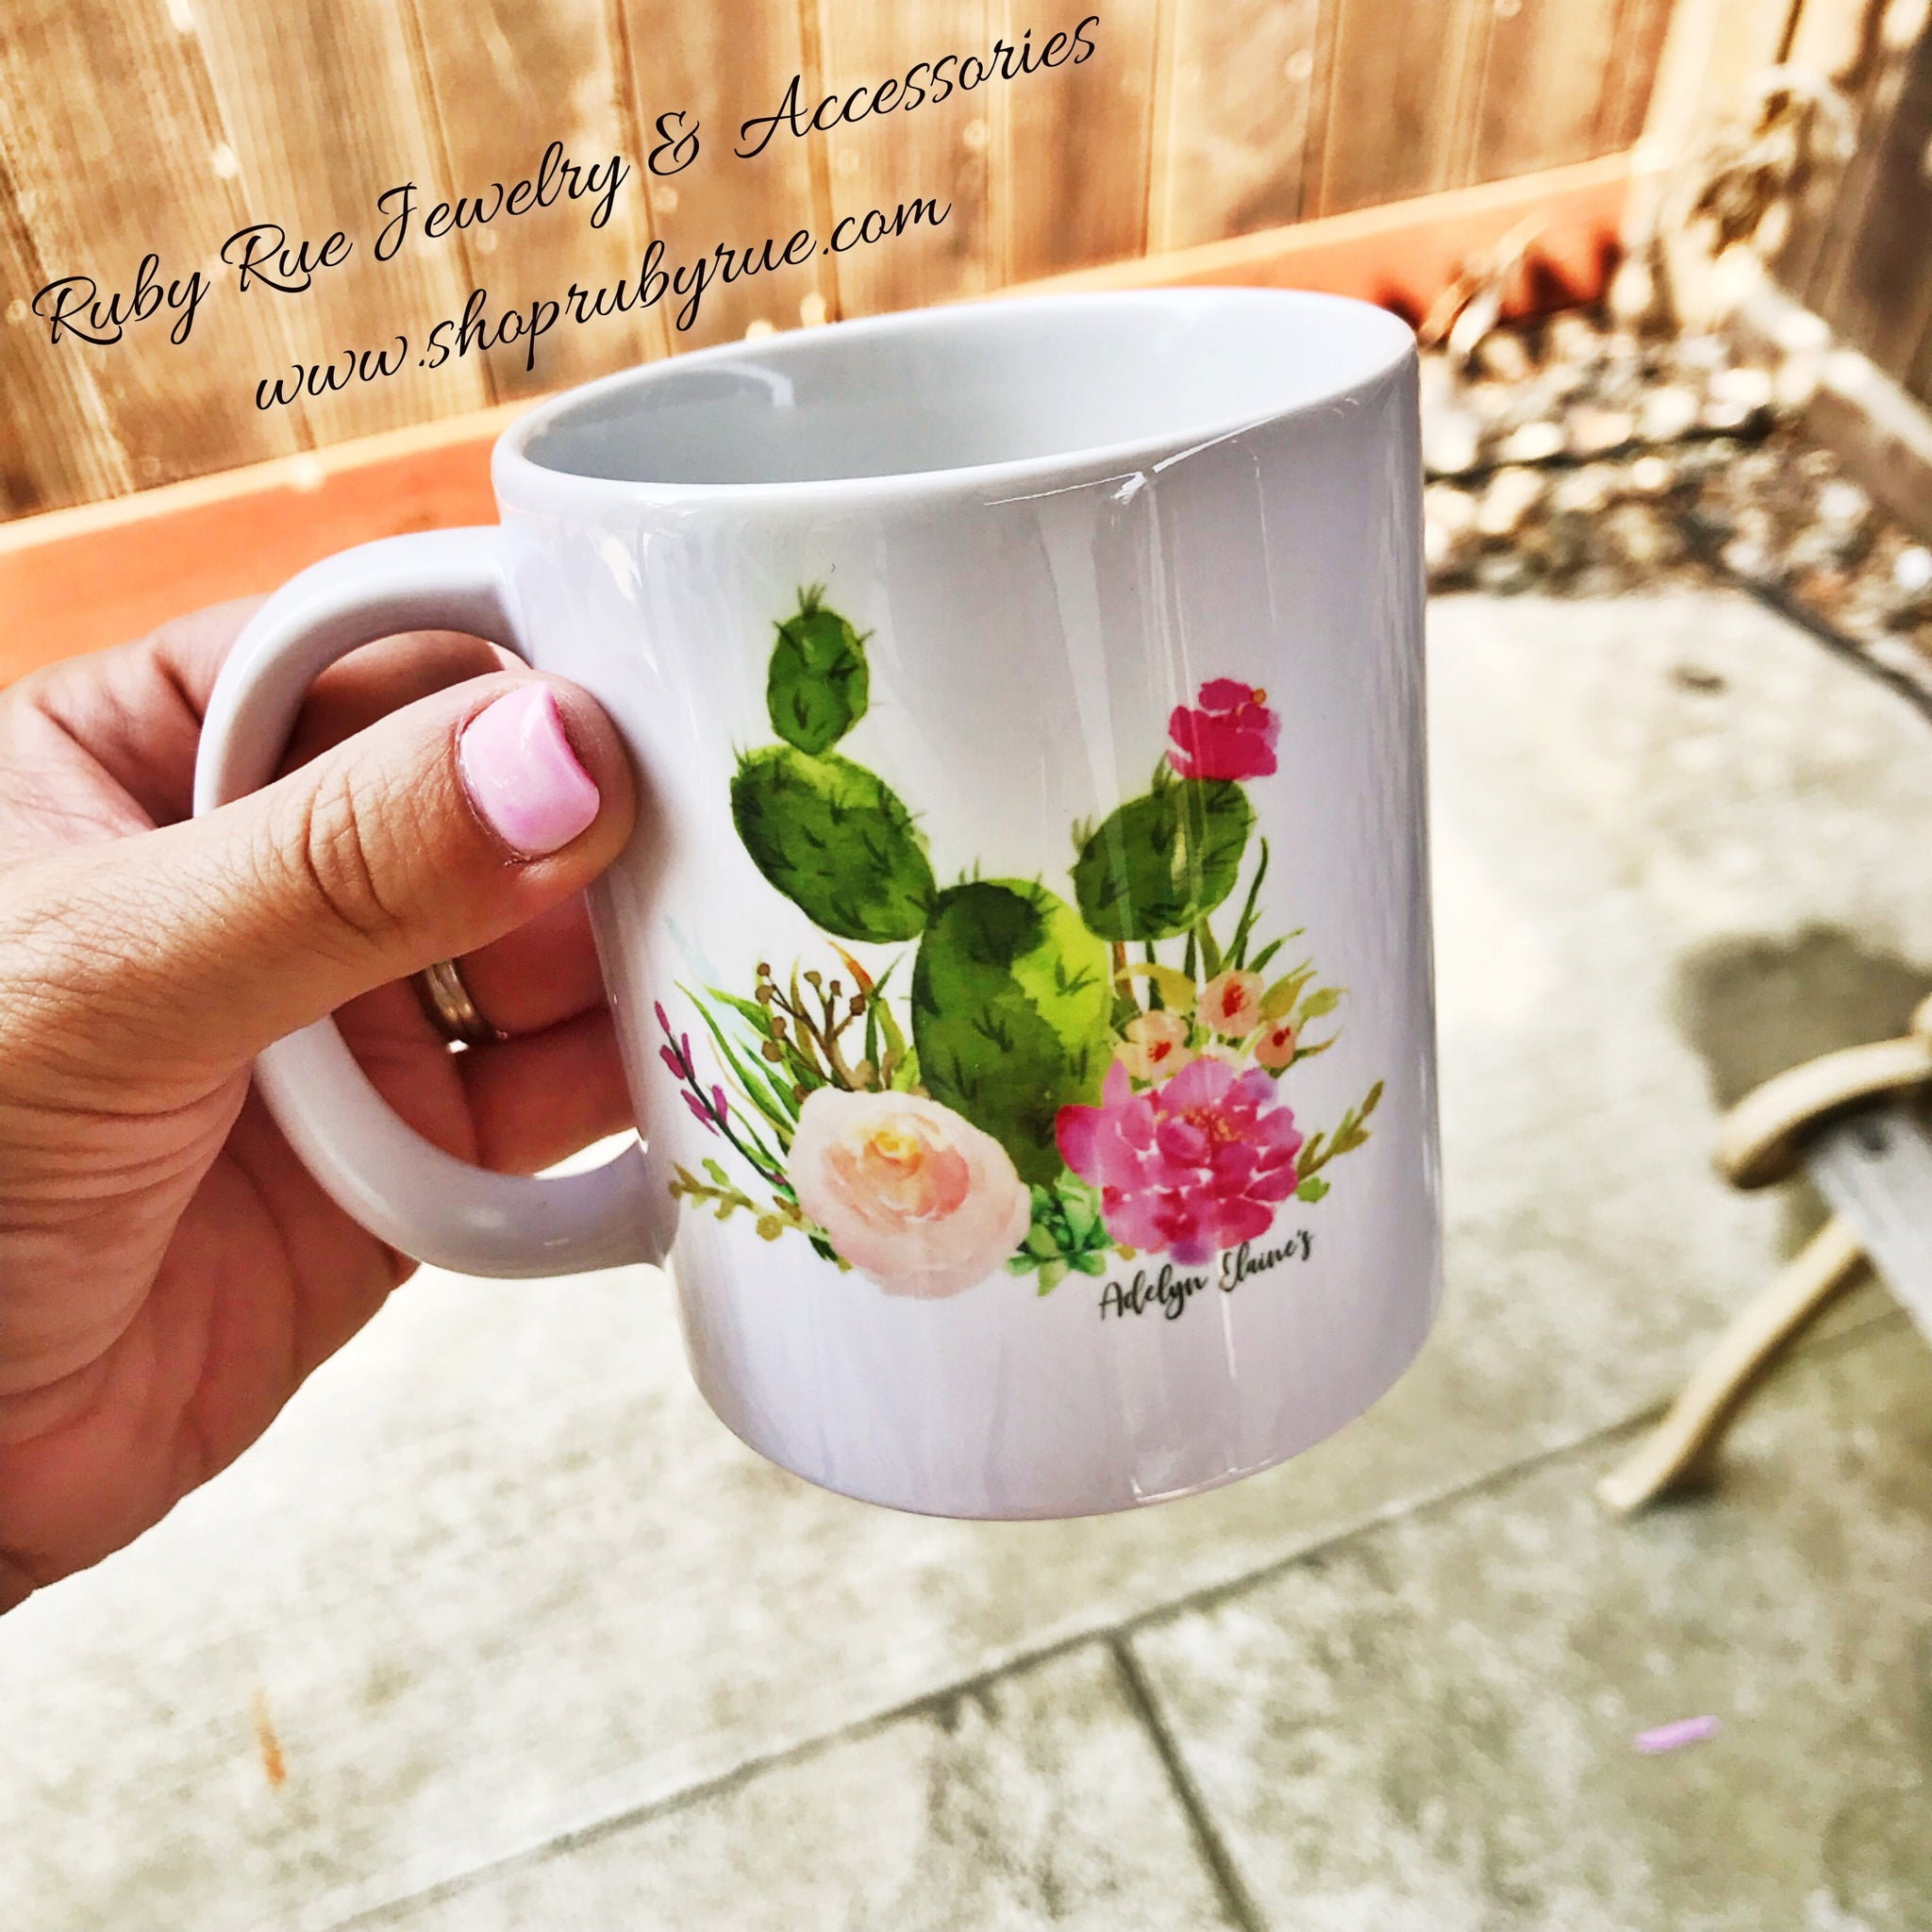 Cacti Lovin' Coffee Mug - Ruby Rue Jewelry & Accessories